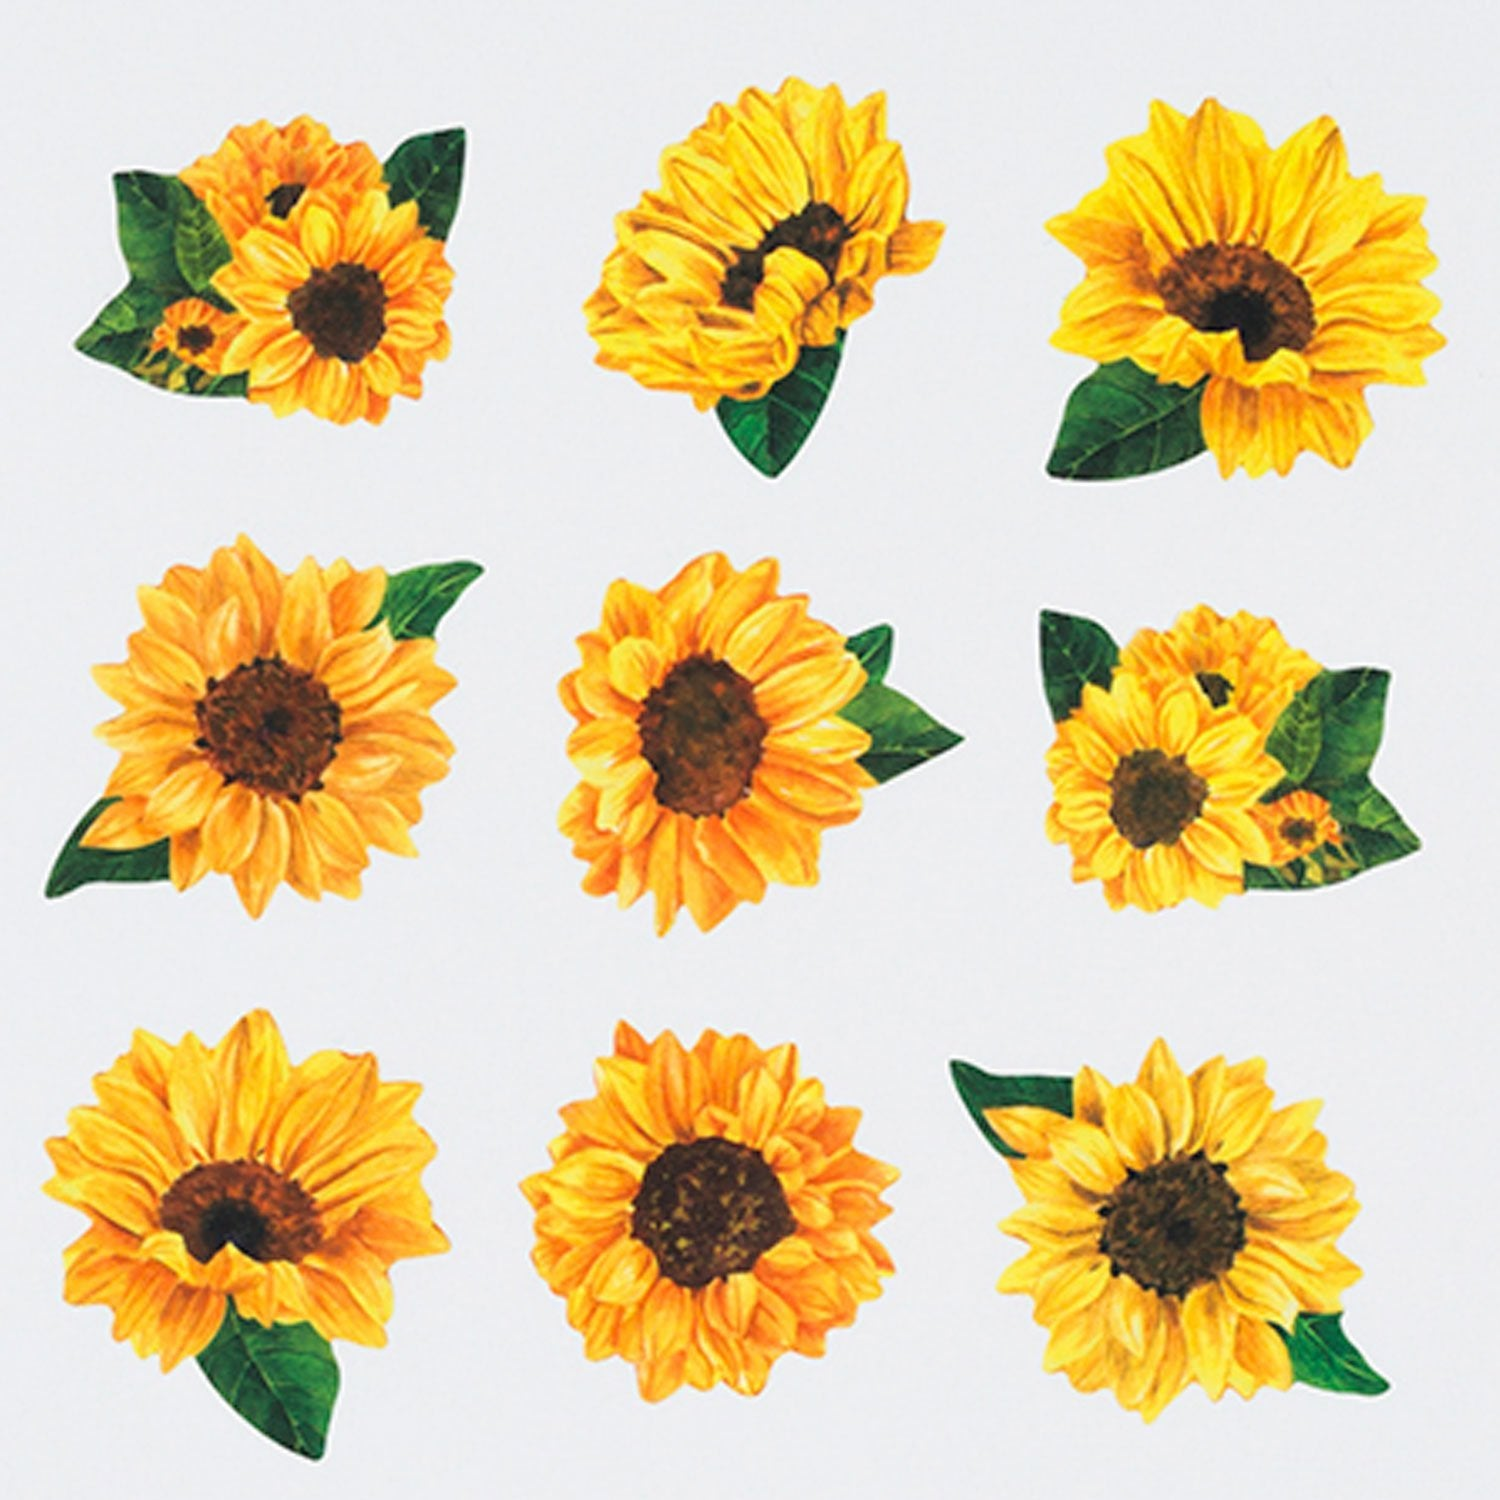 73463d4ad Bande Masking Roll Sticker Masking Tape Sunflower for Scrapbooking DIY  (BDA233)